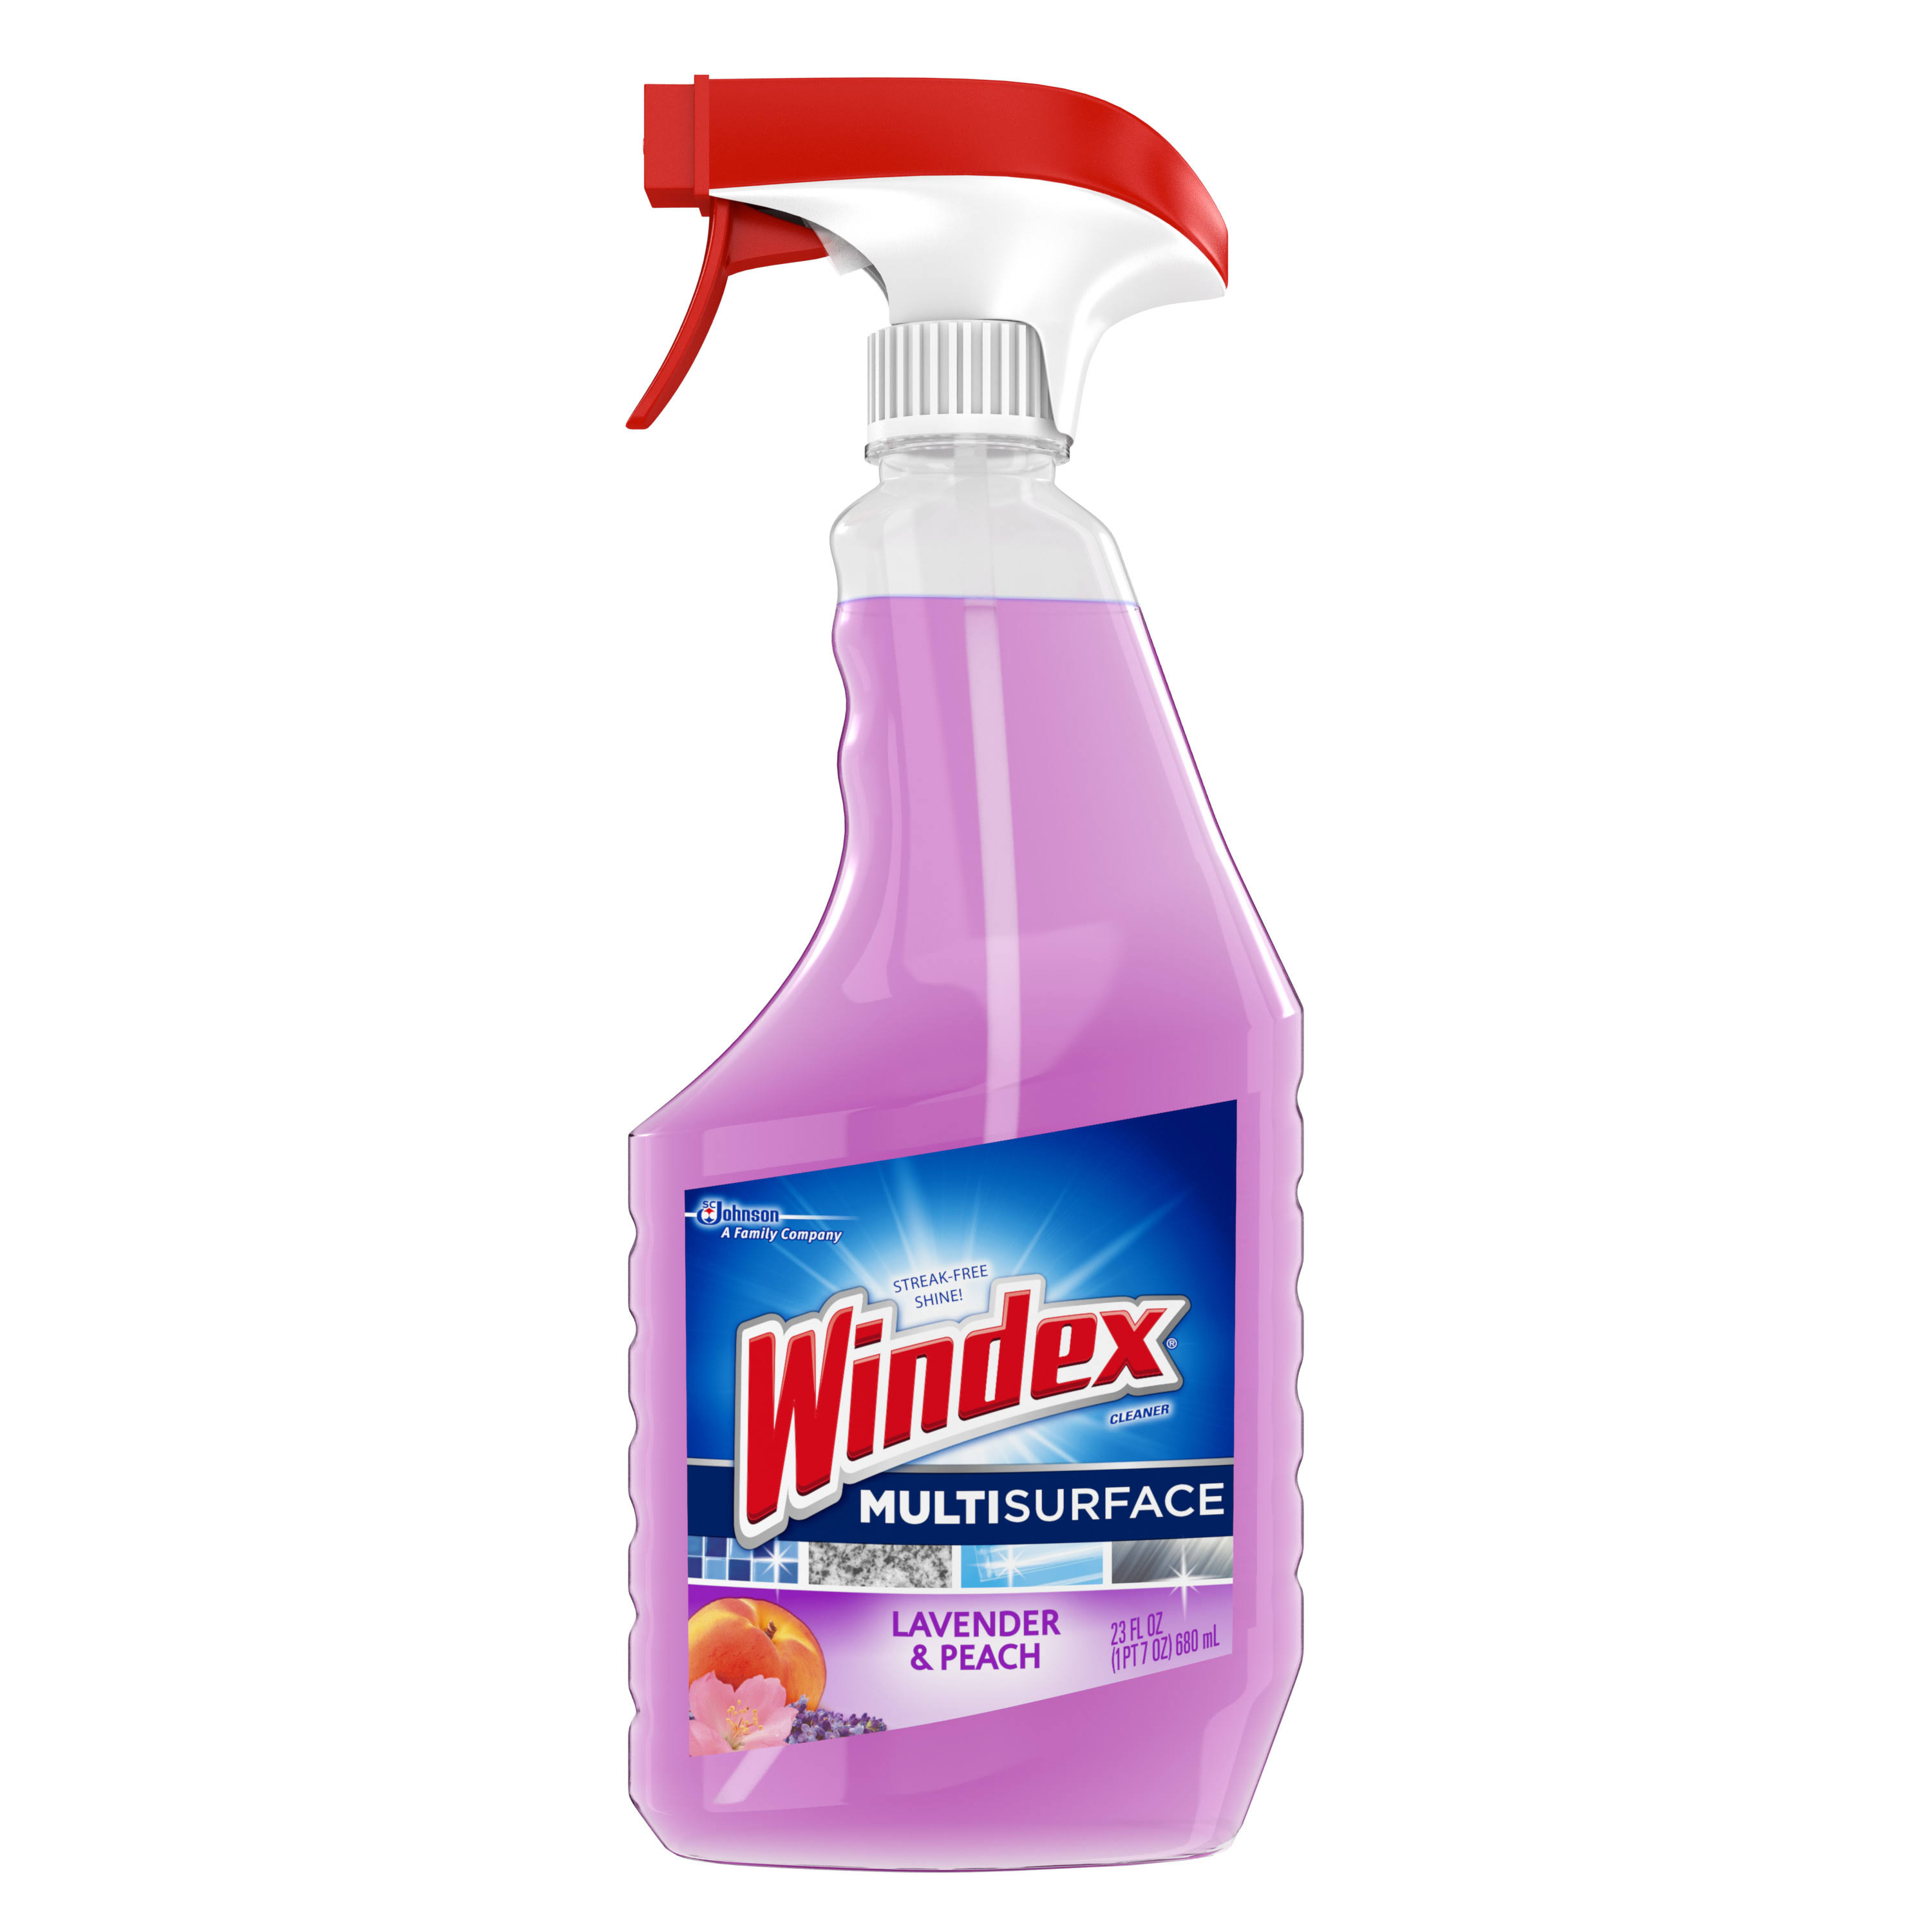 Windex Multi Surface Cleaner Spray - Lavender and Peach Blossom, 23oz